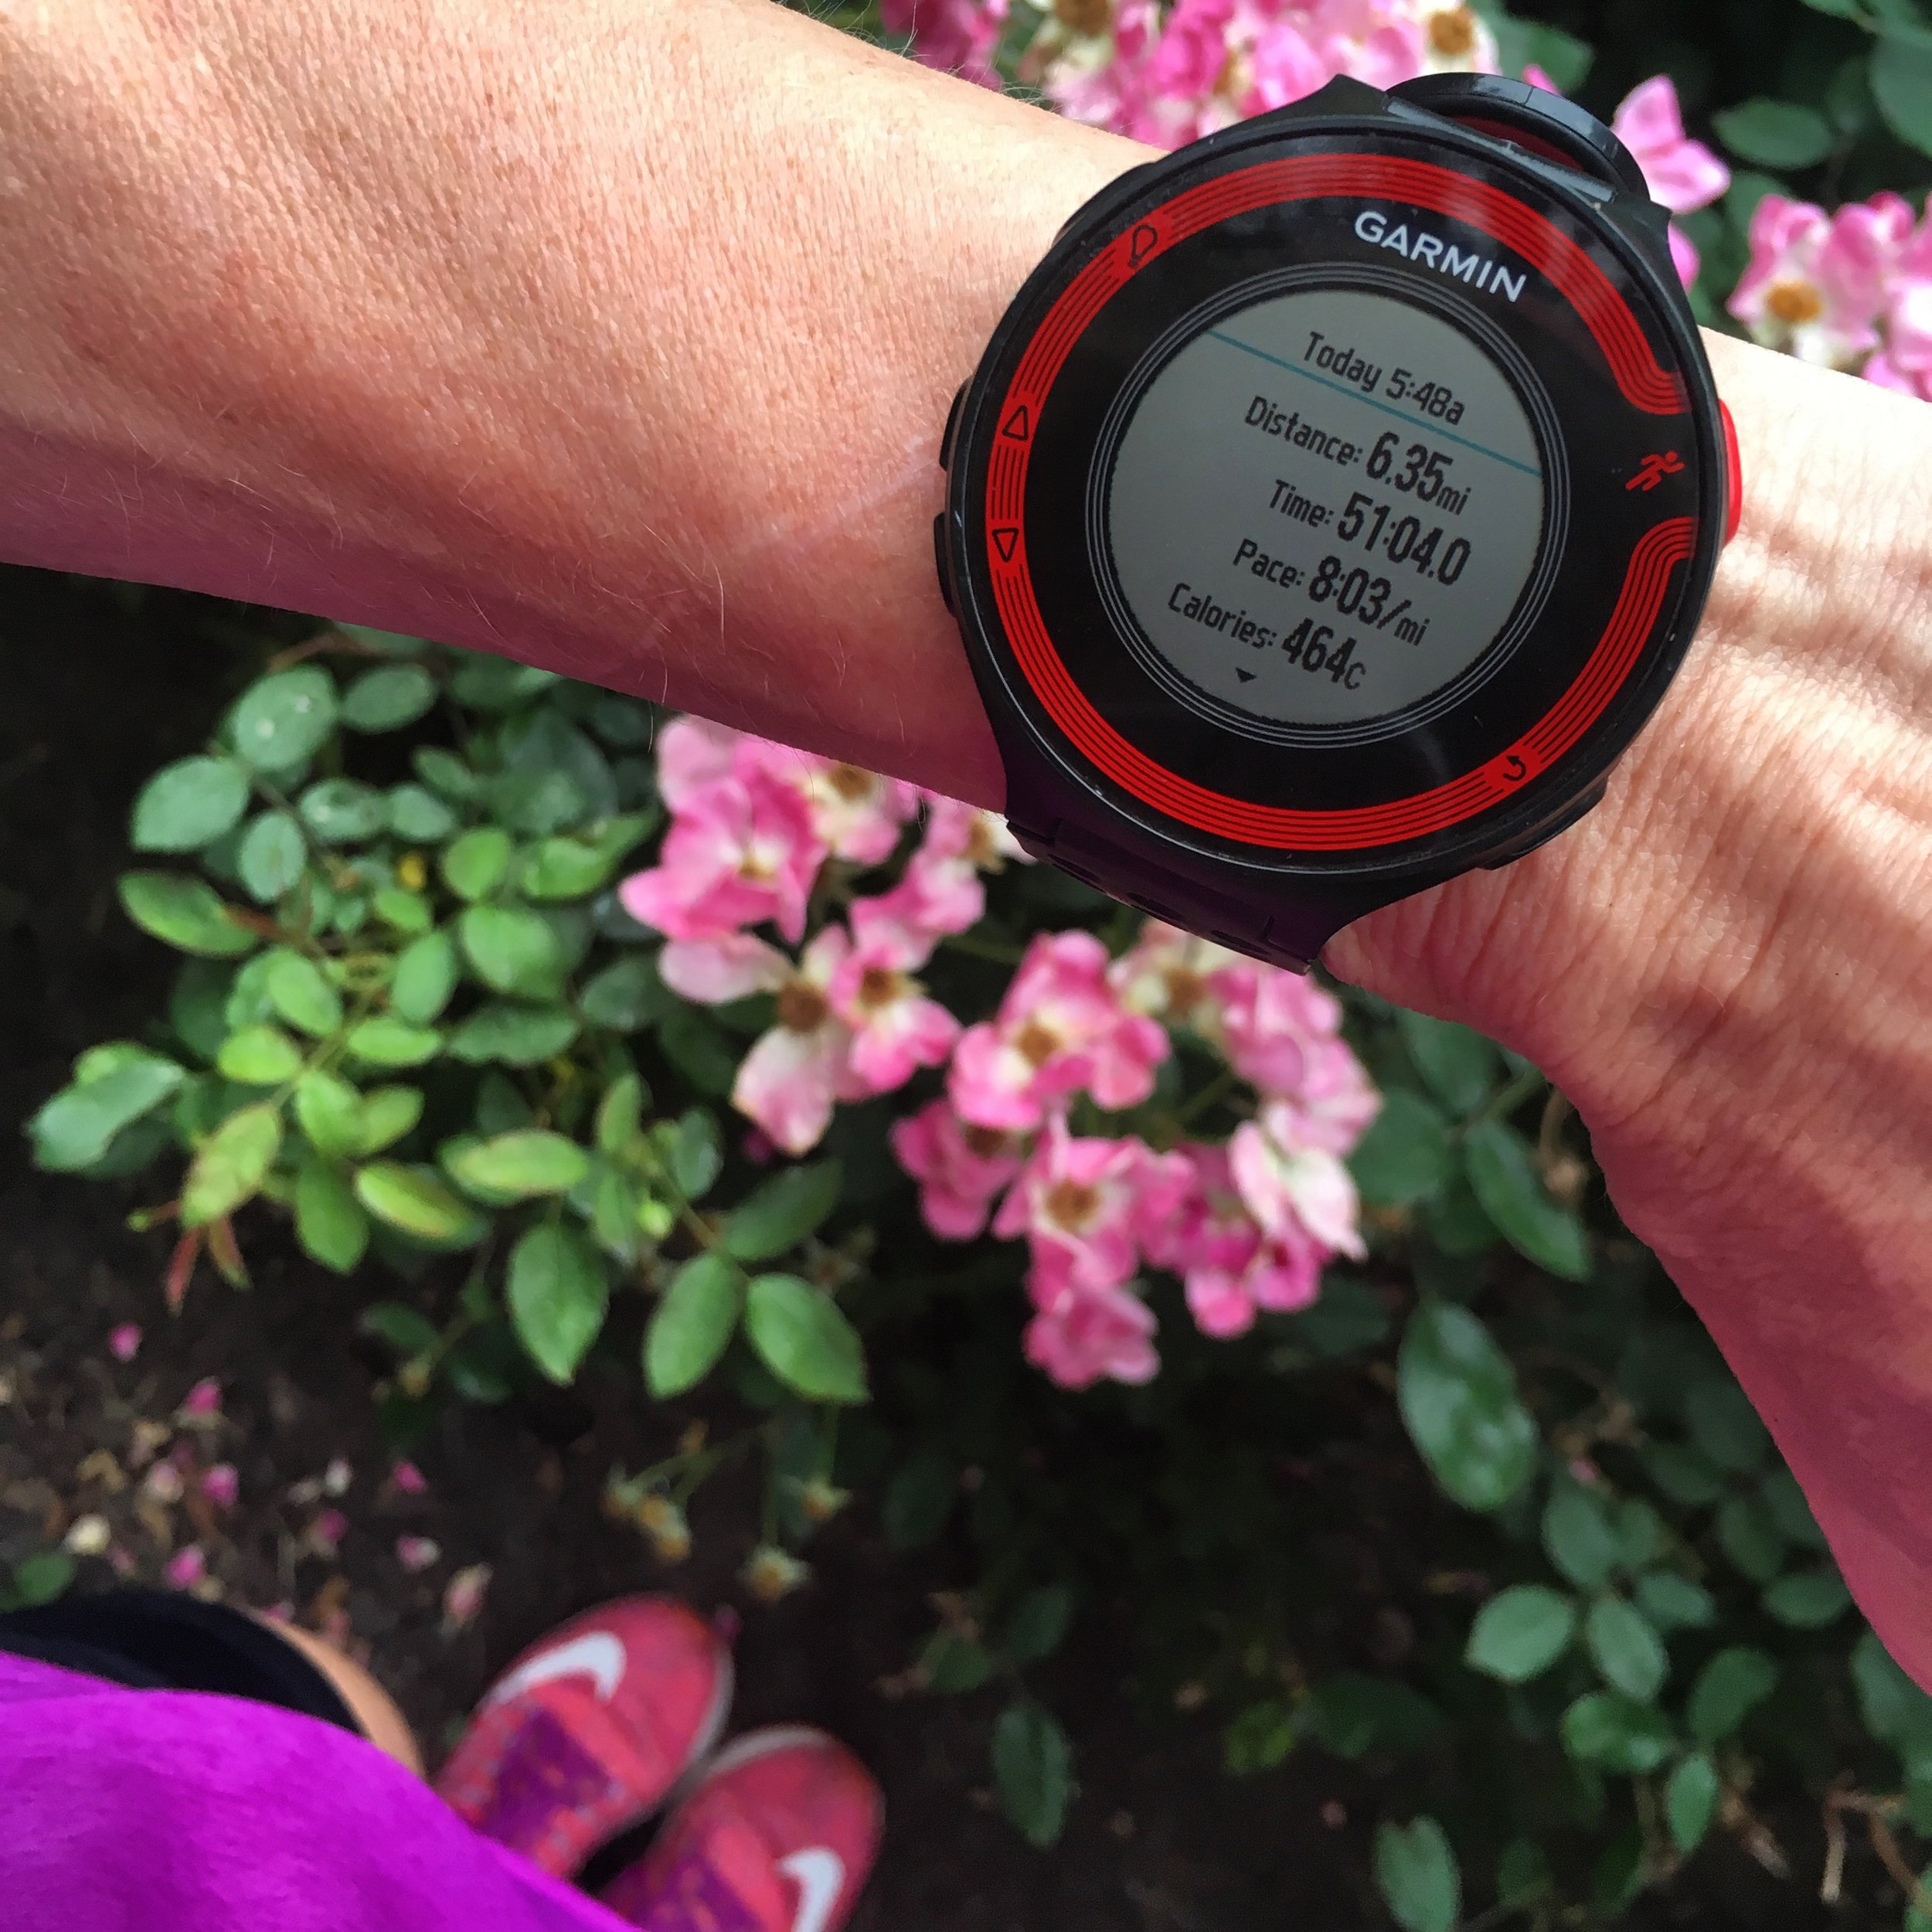 First tempo run of the training cycle